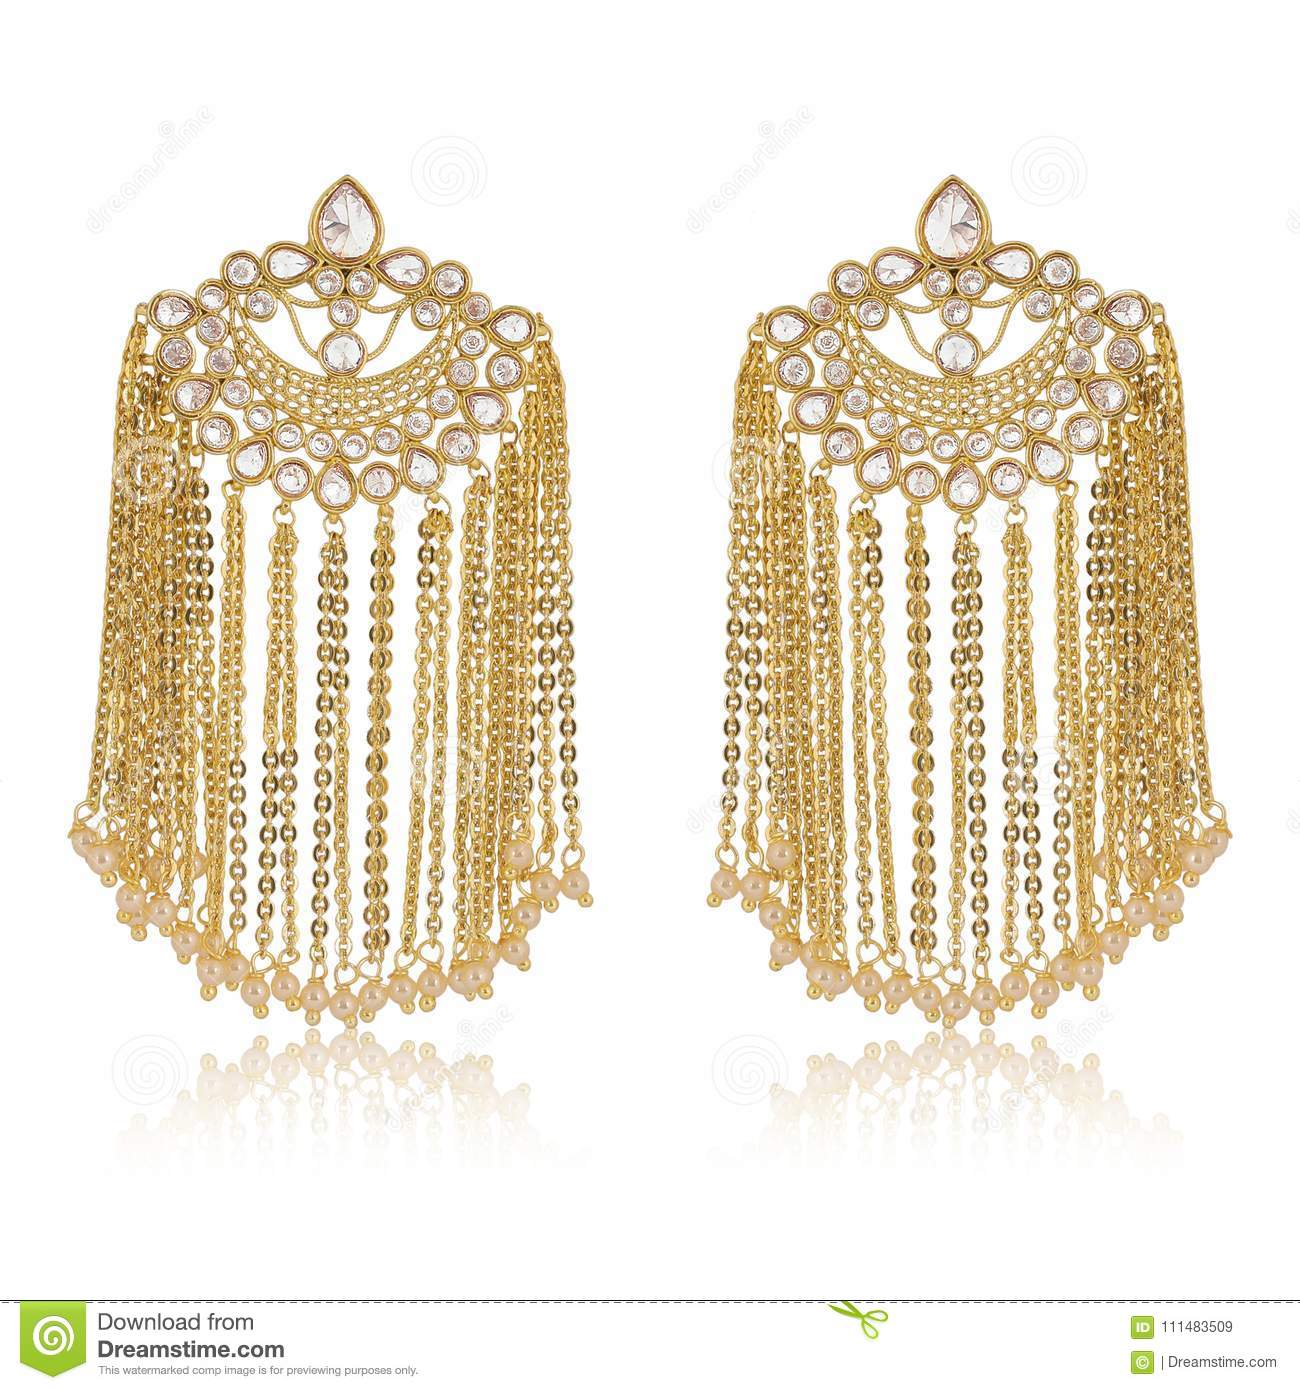 Indian earrings of gold chains